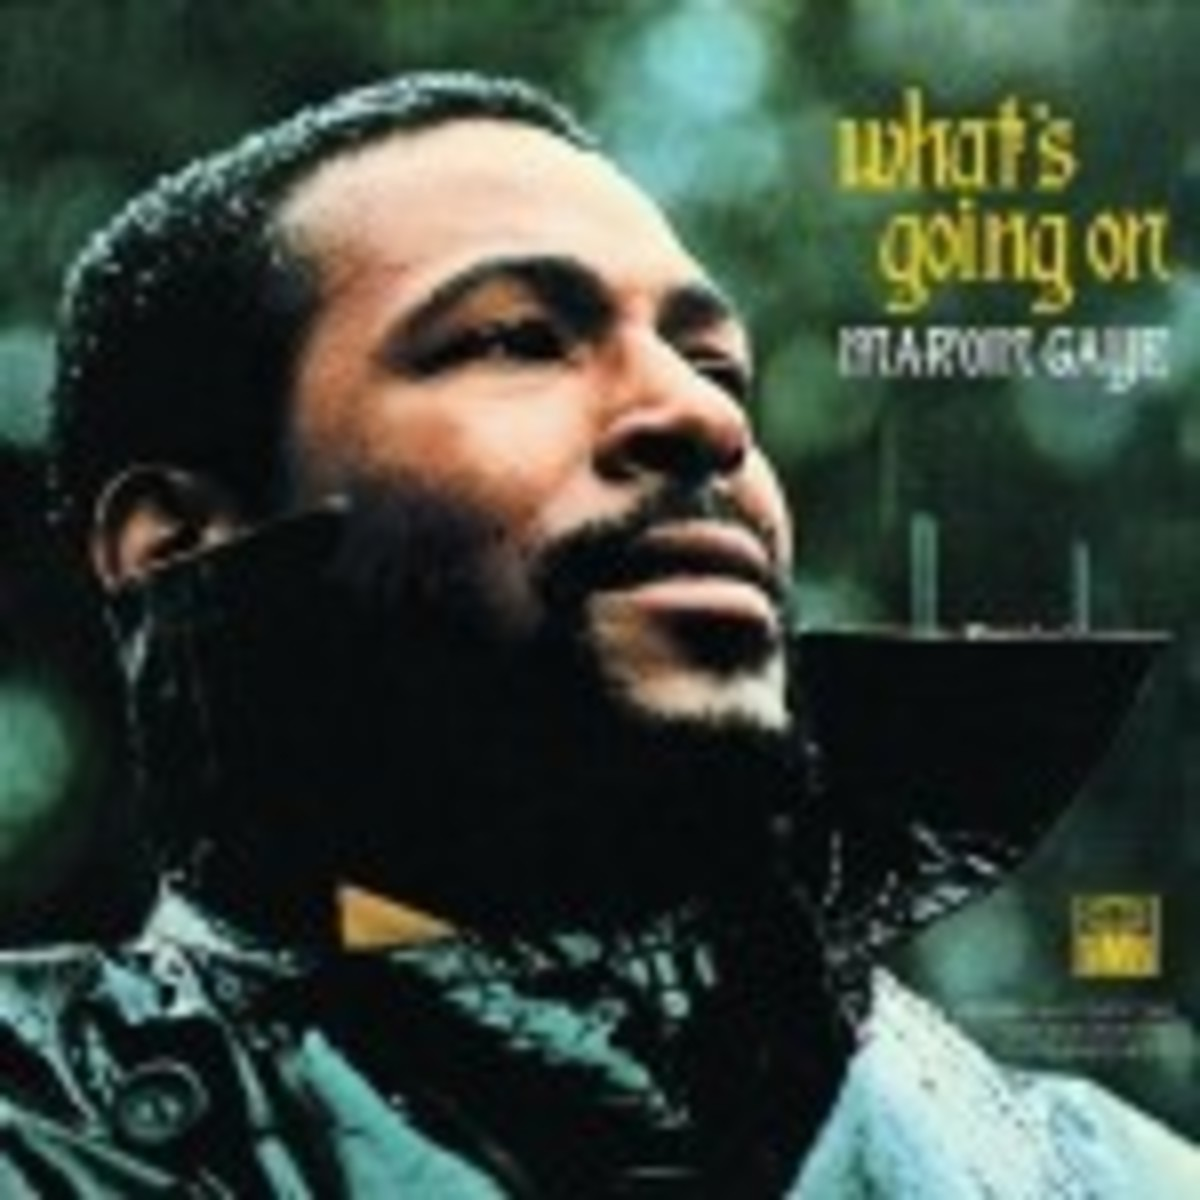 Marvin Gaye_What's Going On